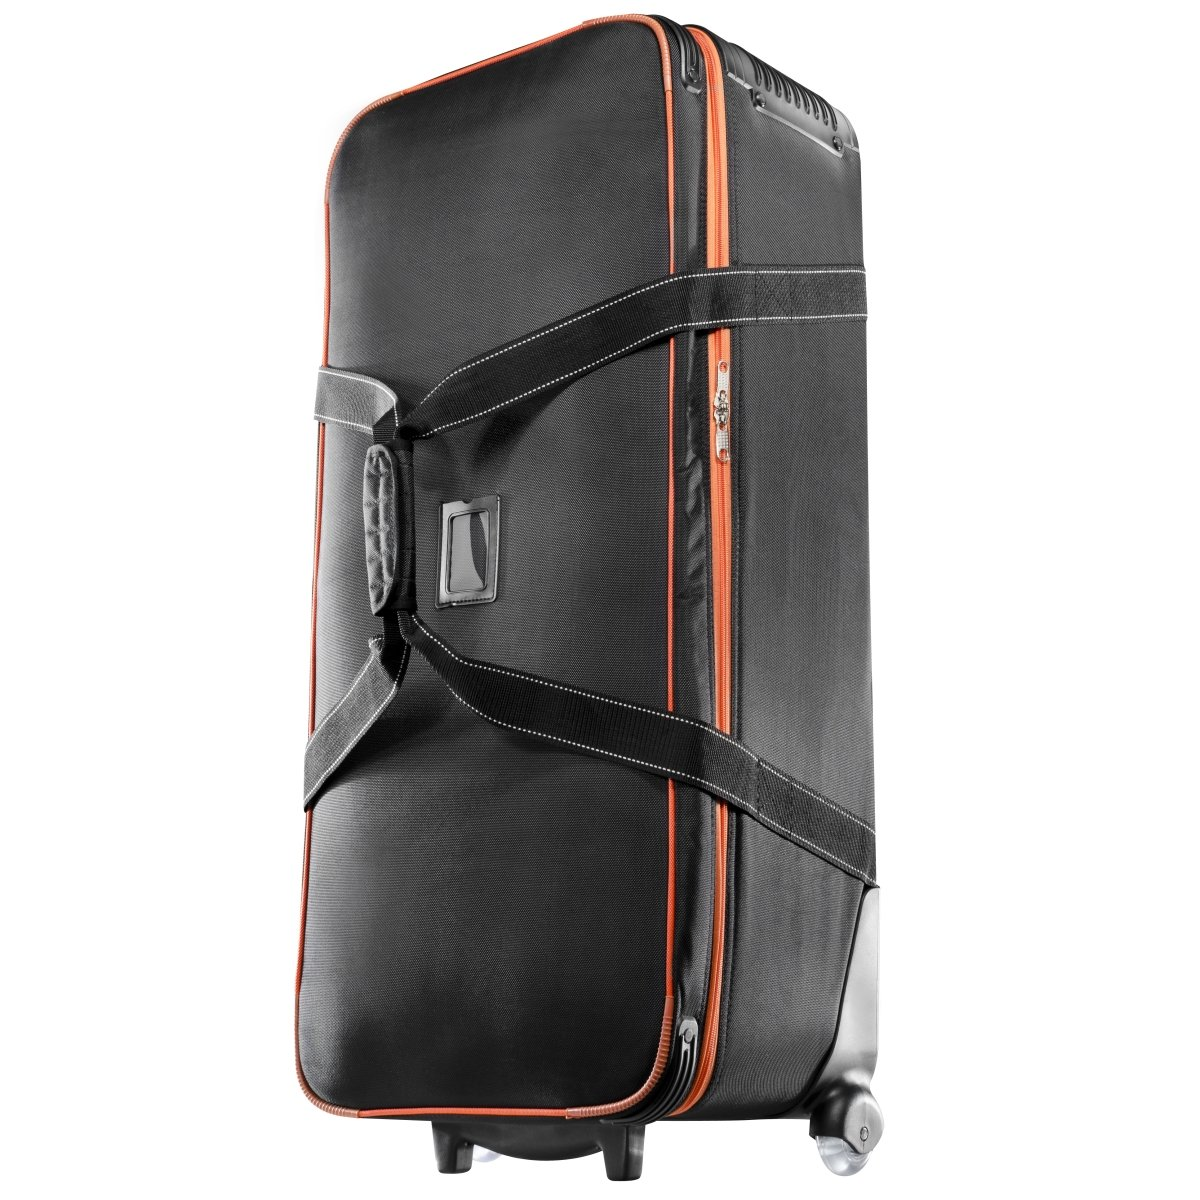 Accessories Bags Trolley Bag Foldable Broncolor Trolley S Studioexpress